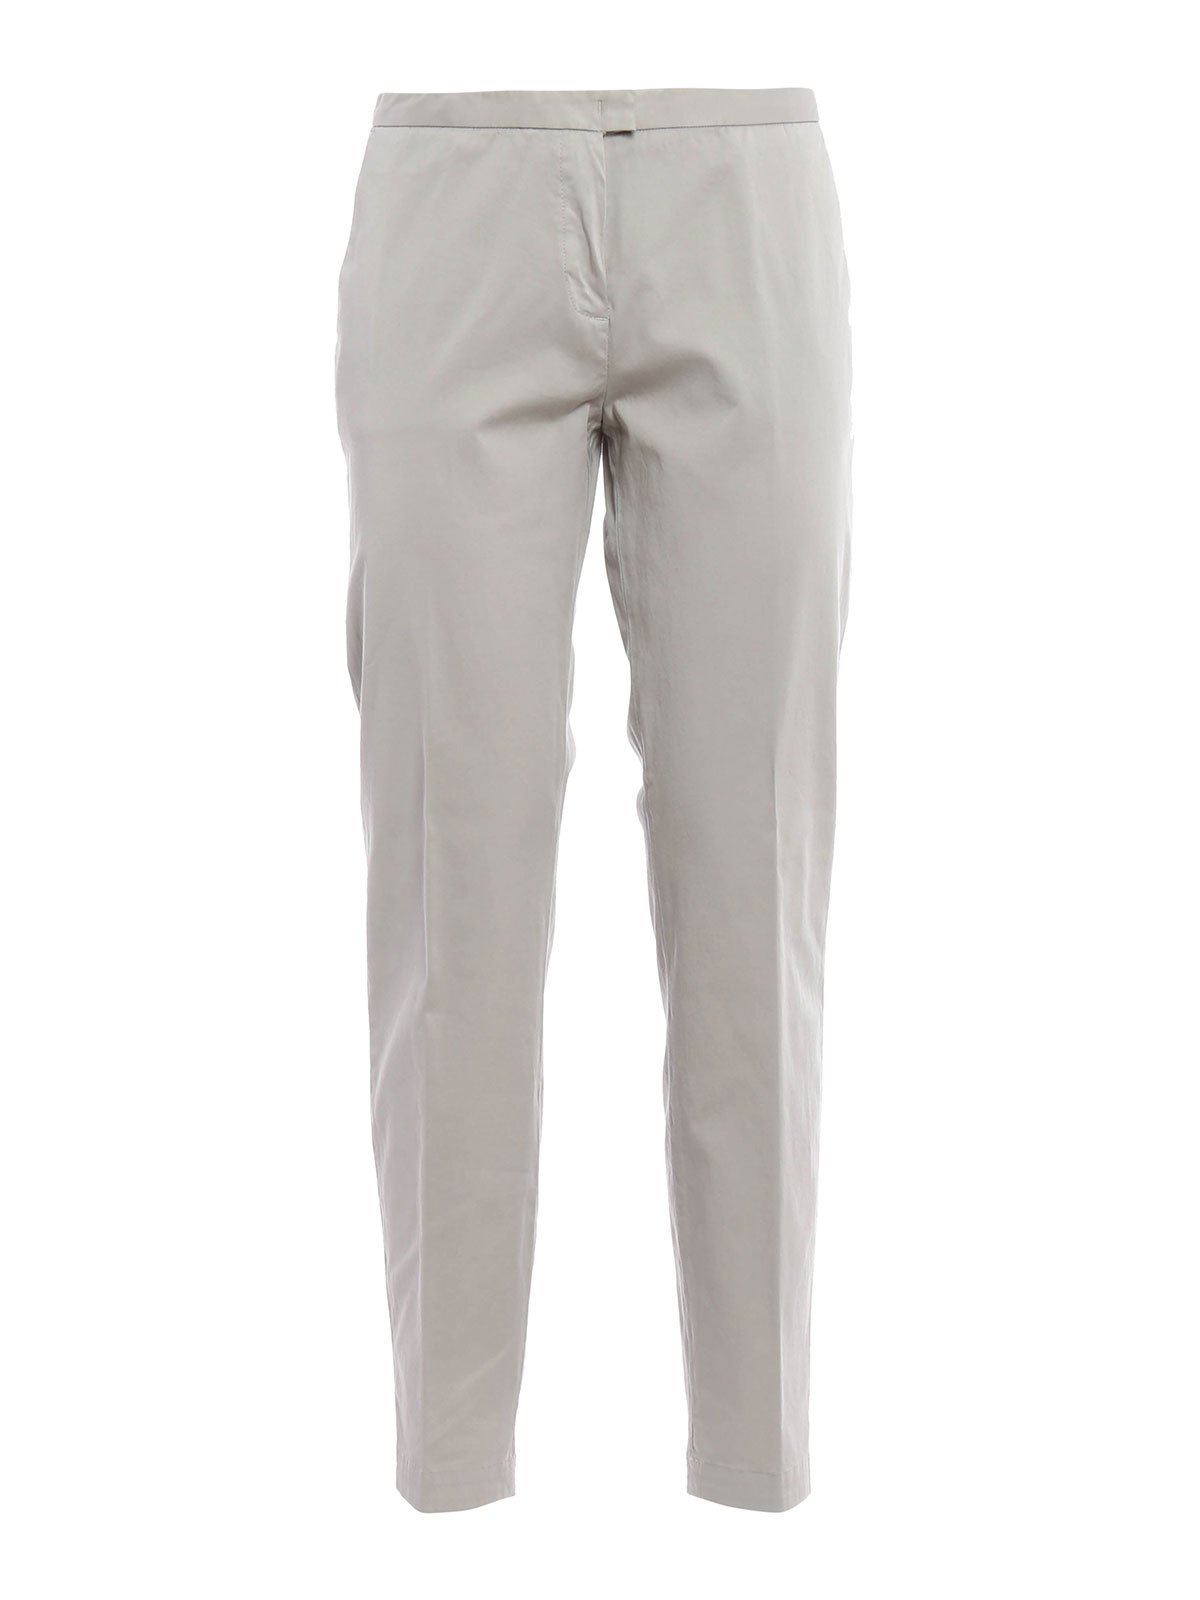 TROUSERS - Casual trousers Fabiana Filippi Clearance Visit Fashion Style For Sale Cheap Sale Extremely Fake For Sale H6RvWUk7dV